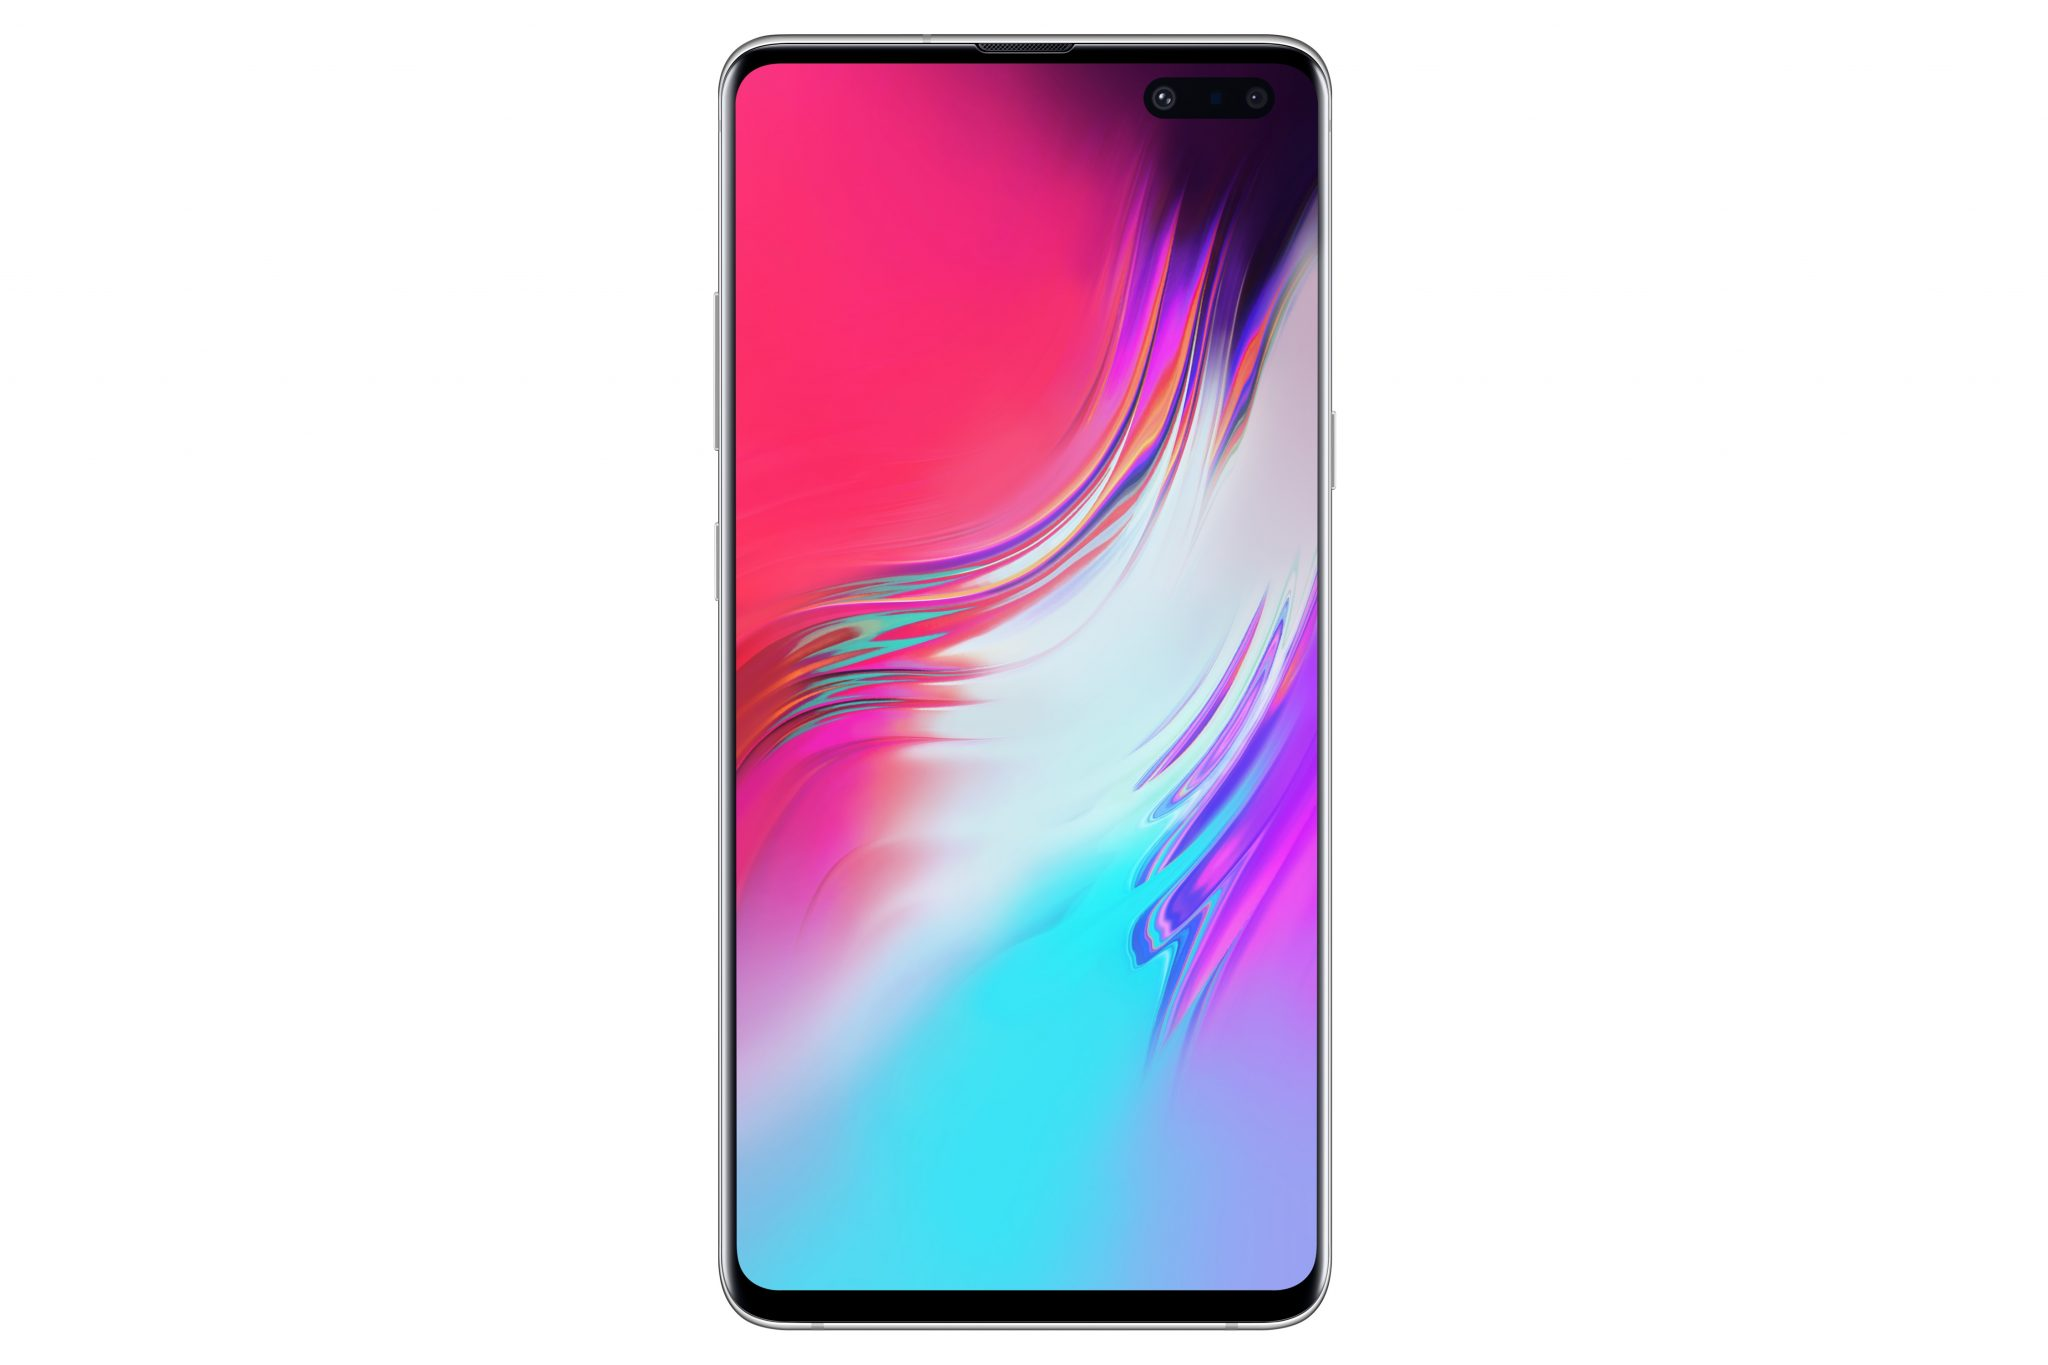 Galaxy S10 5G - www.vodafone.co.uk (2)